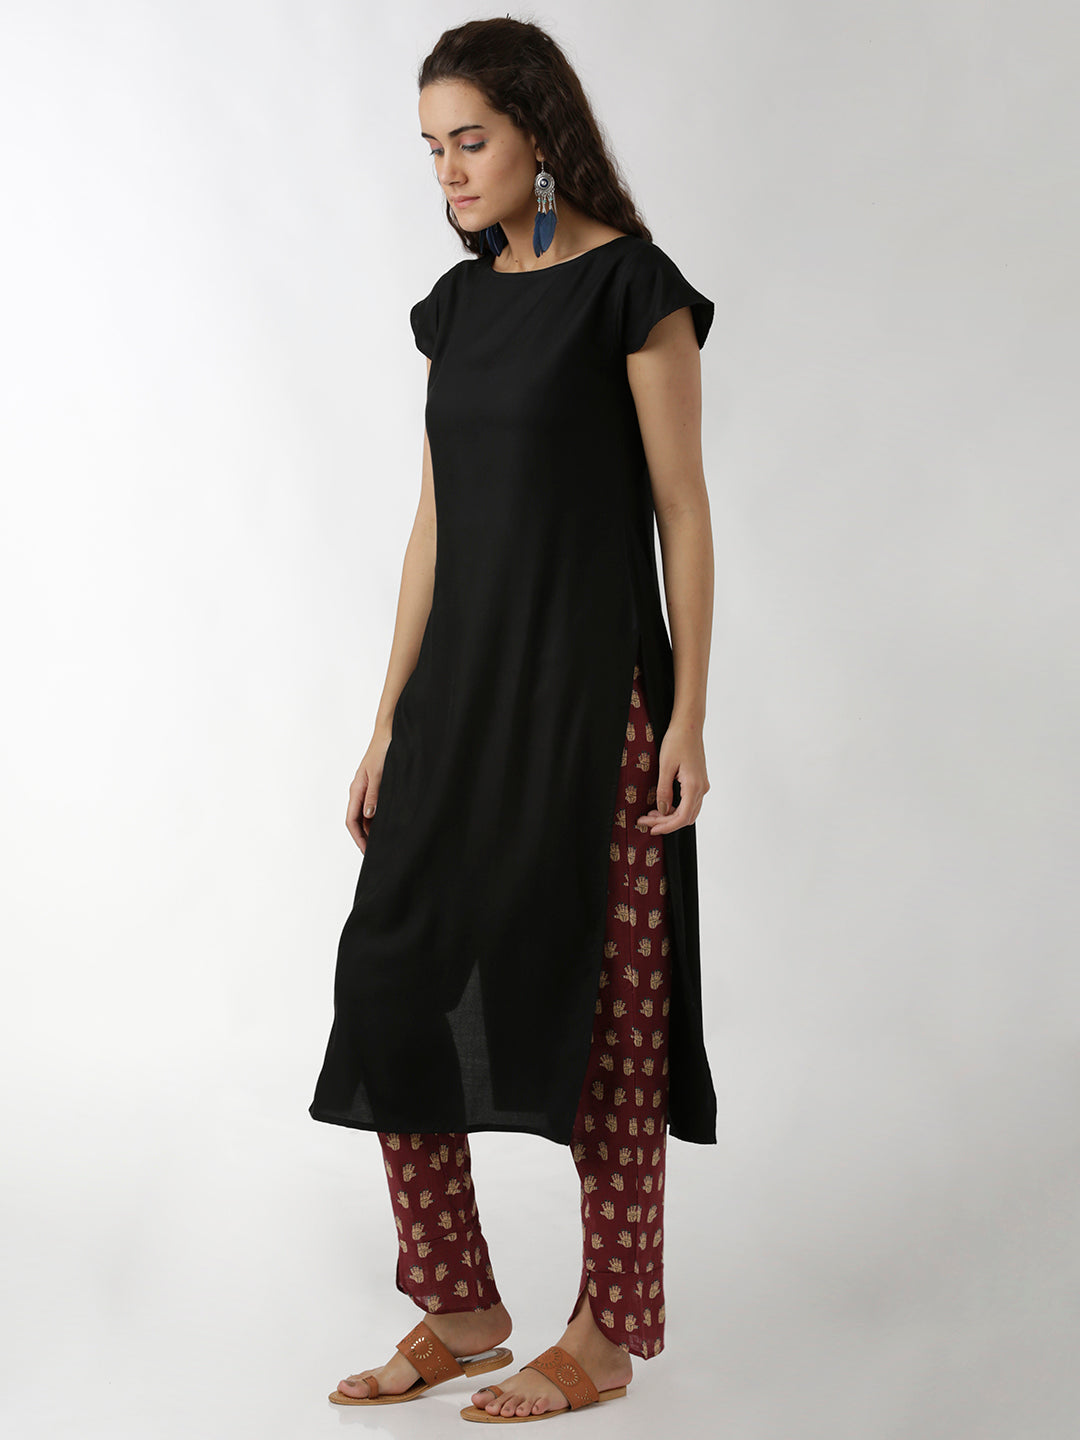 Breya Solid Black Cap Sleeve Straight Kurta